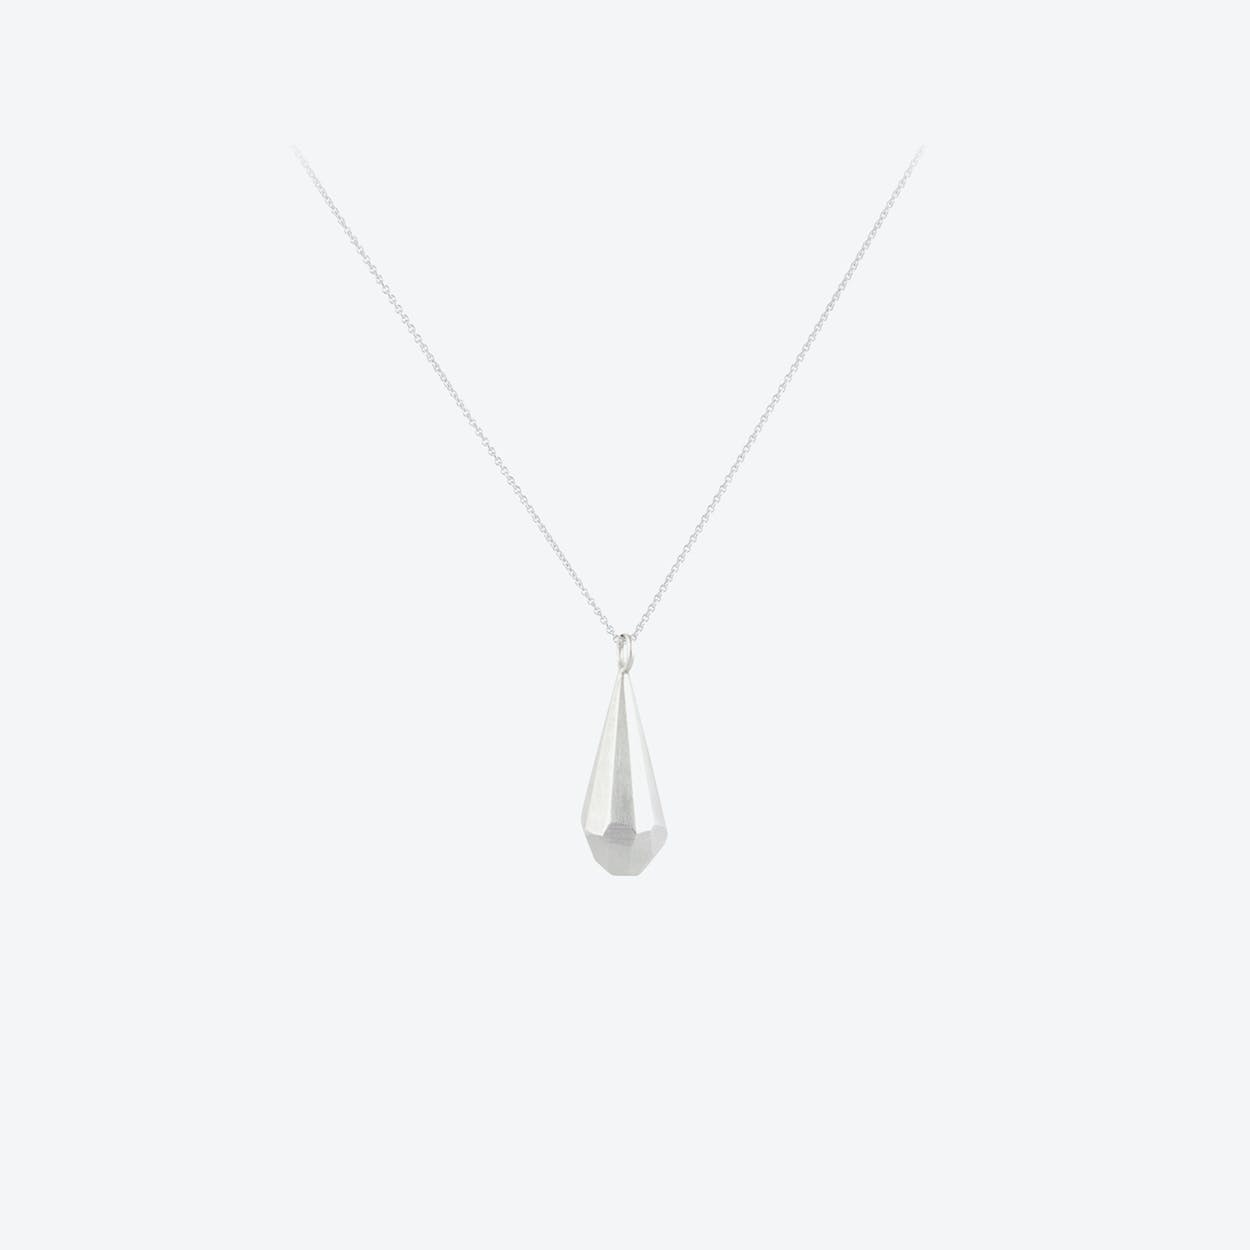 CRYSTAL Necklace in Sterling Silver